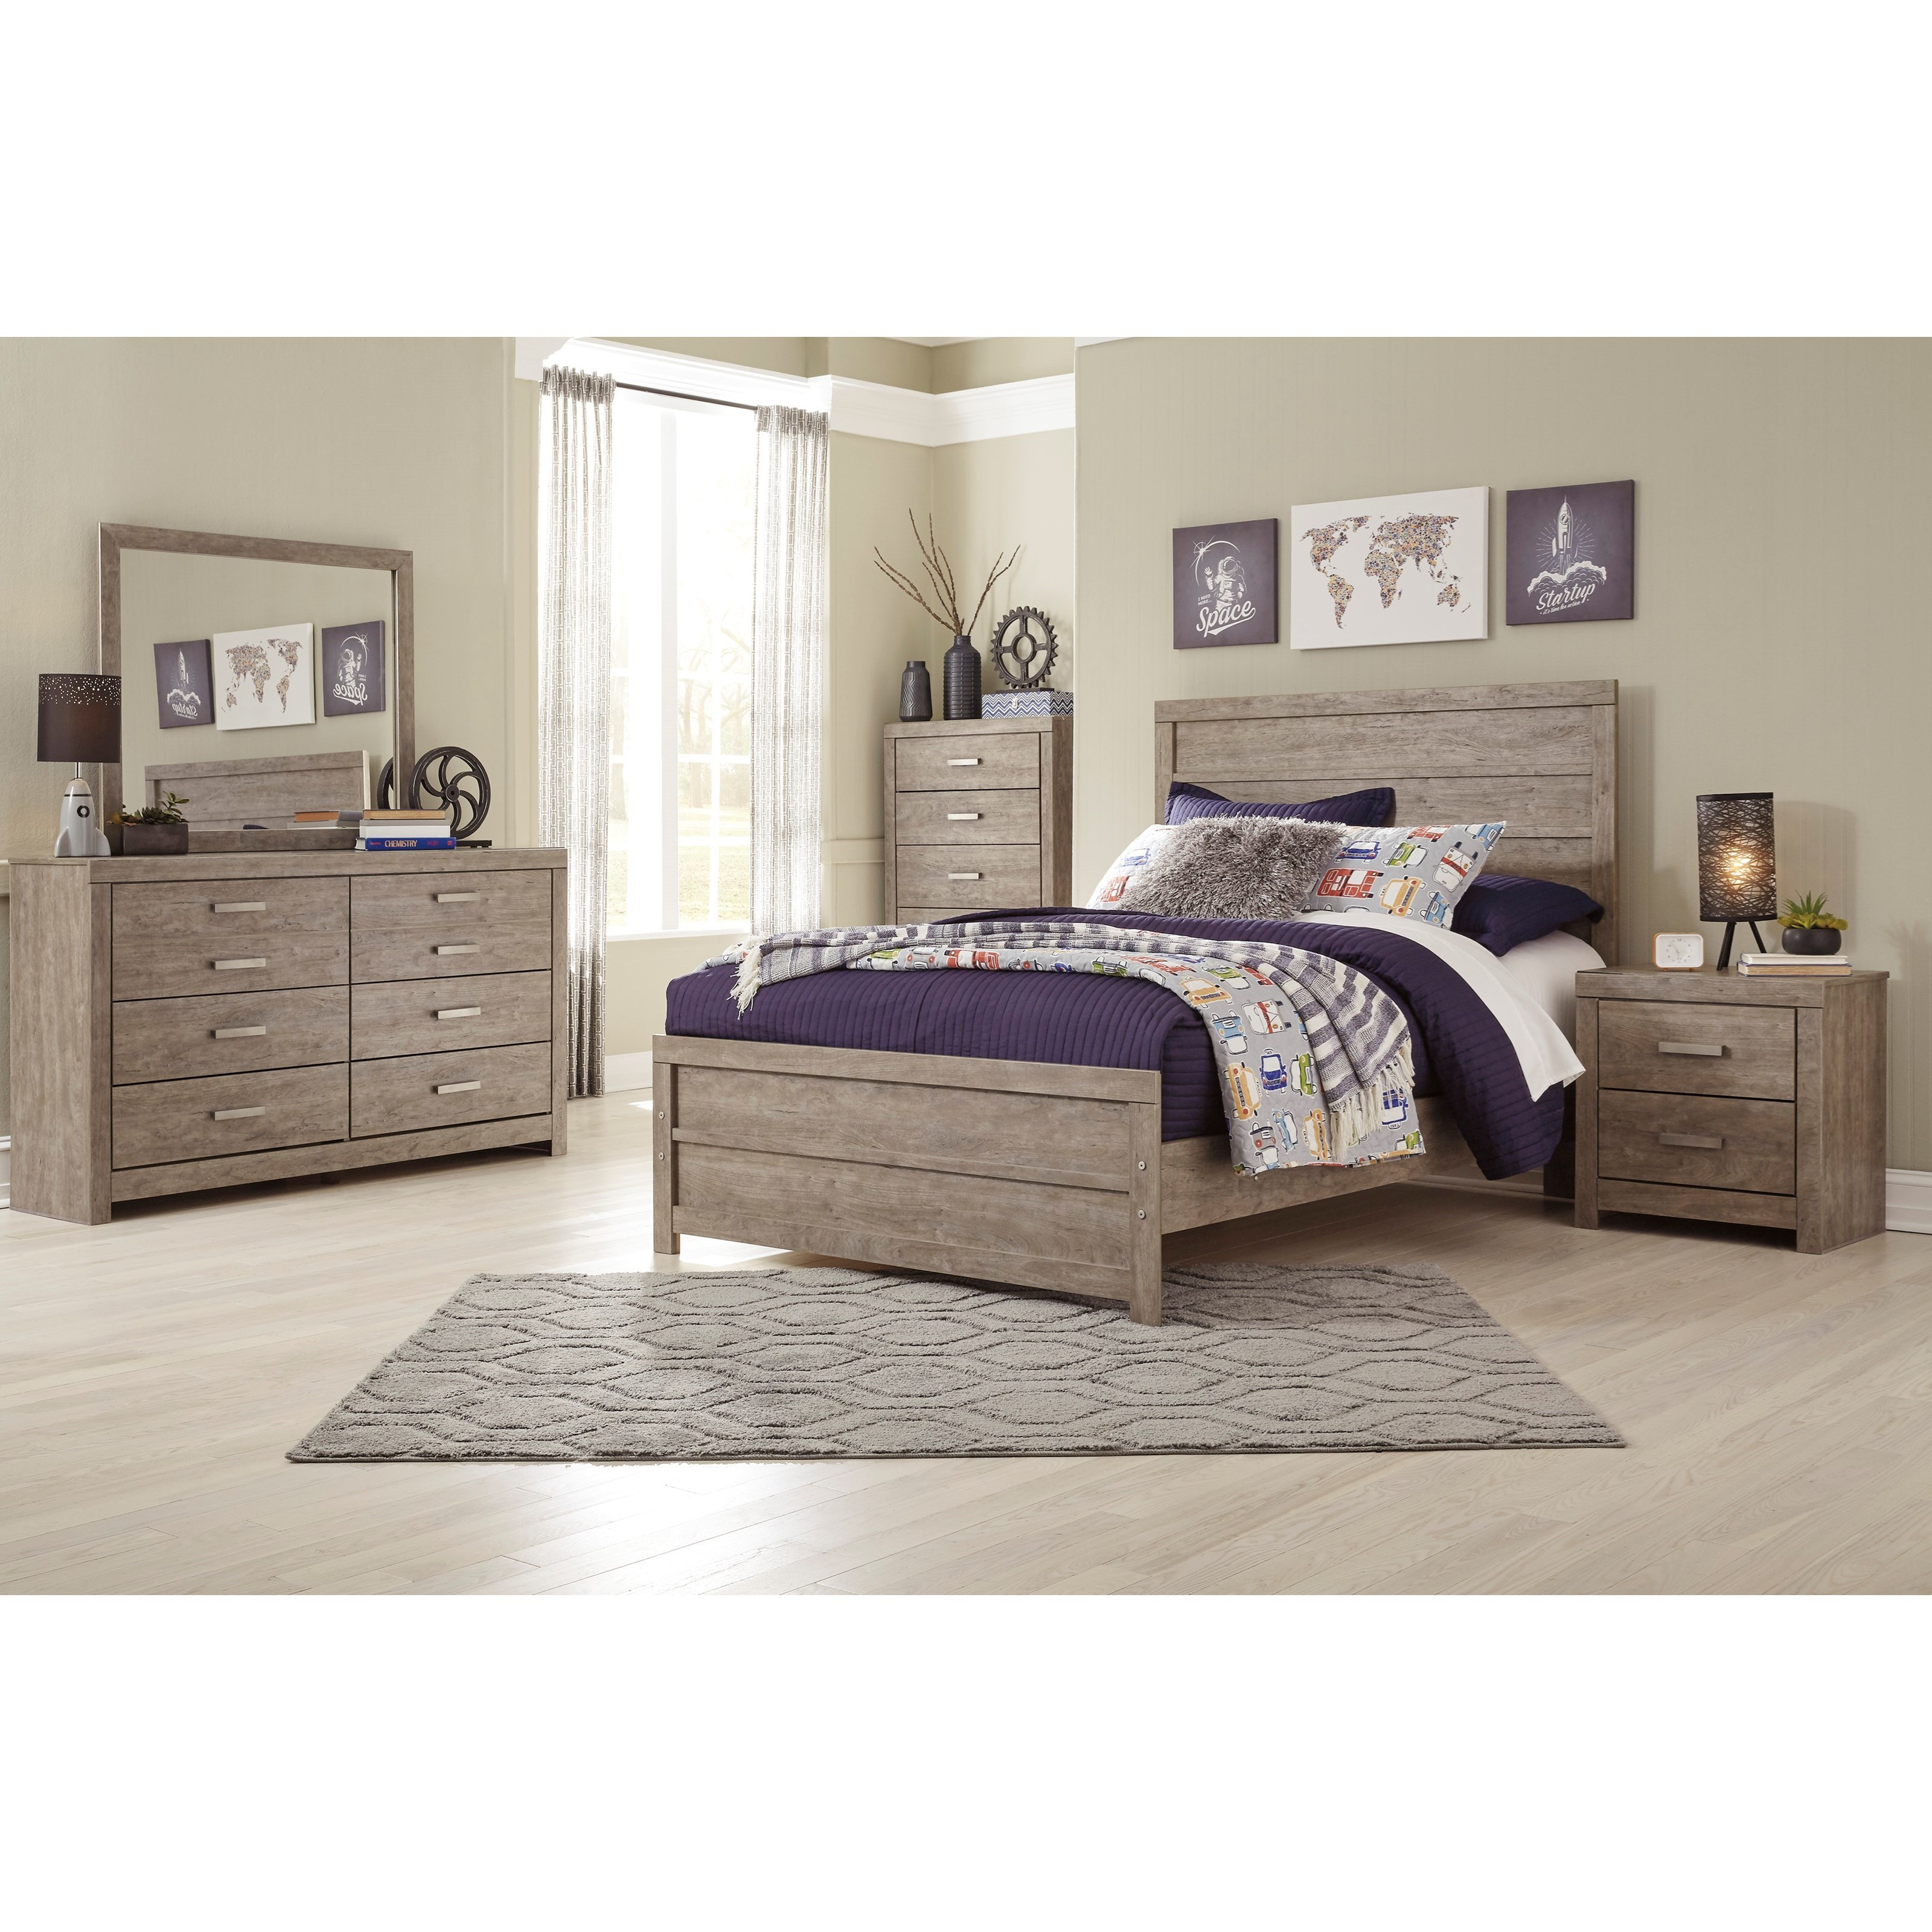 Culverbach Full Bedroom Group by Signature Design by Ashley at Northeast Factory Direct